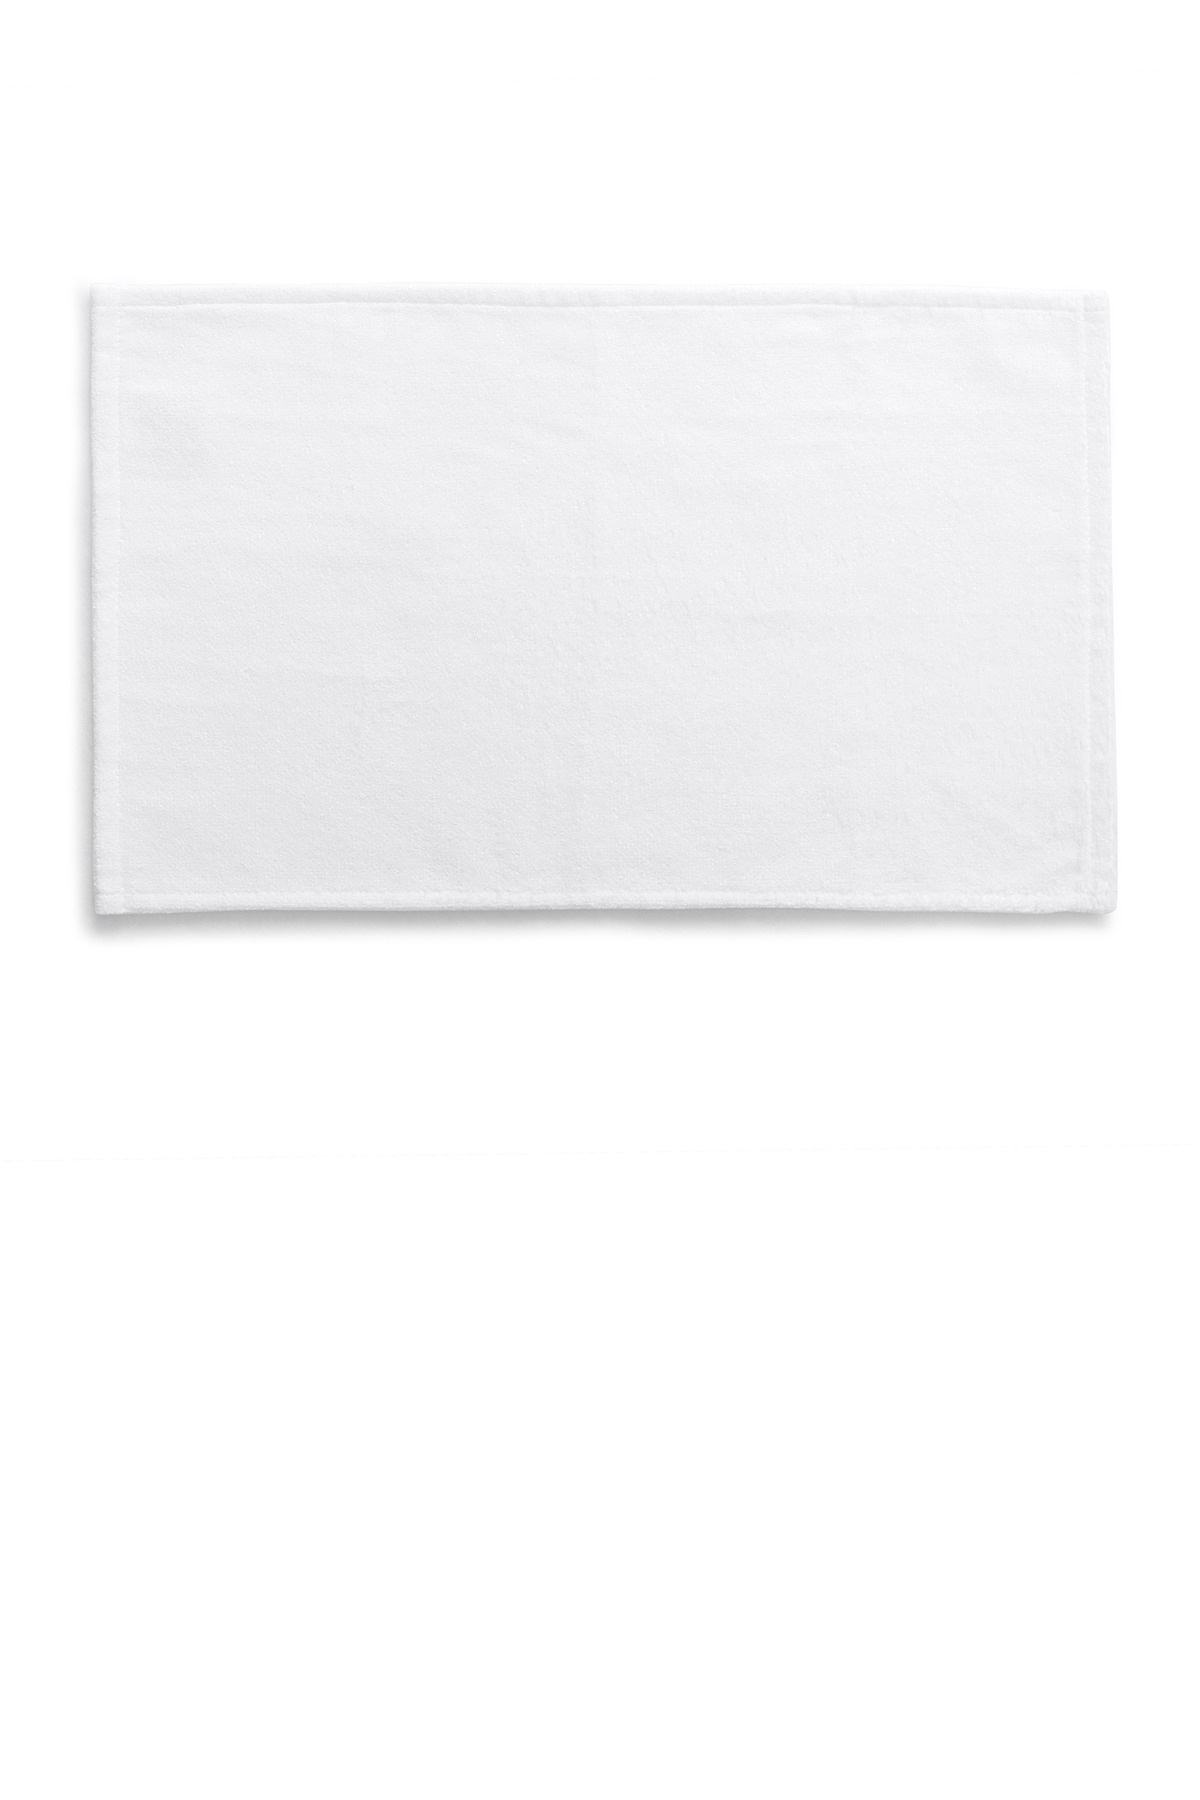 Port Authority  ®  Sublimation Rally Towel PT48 - White